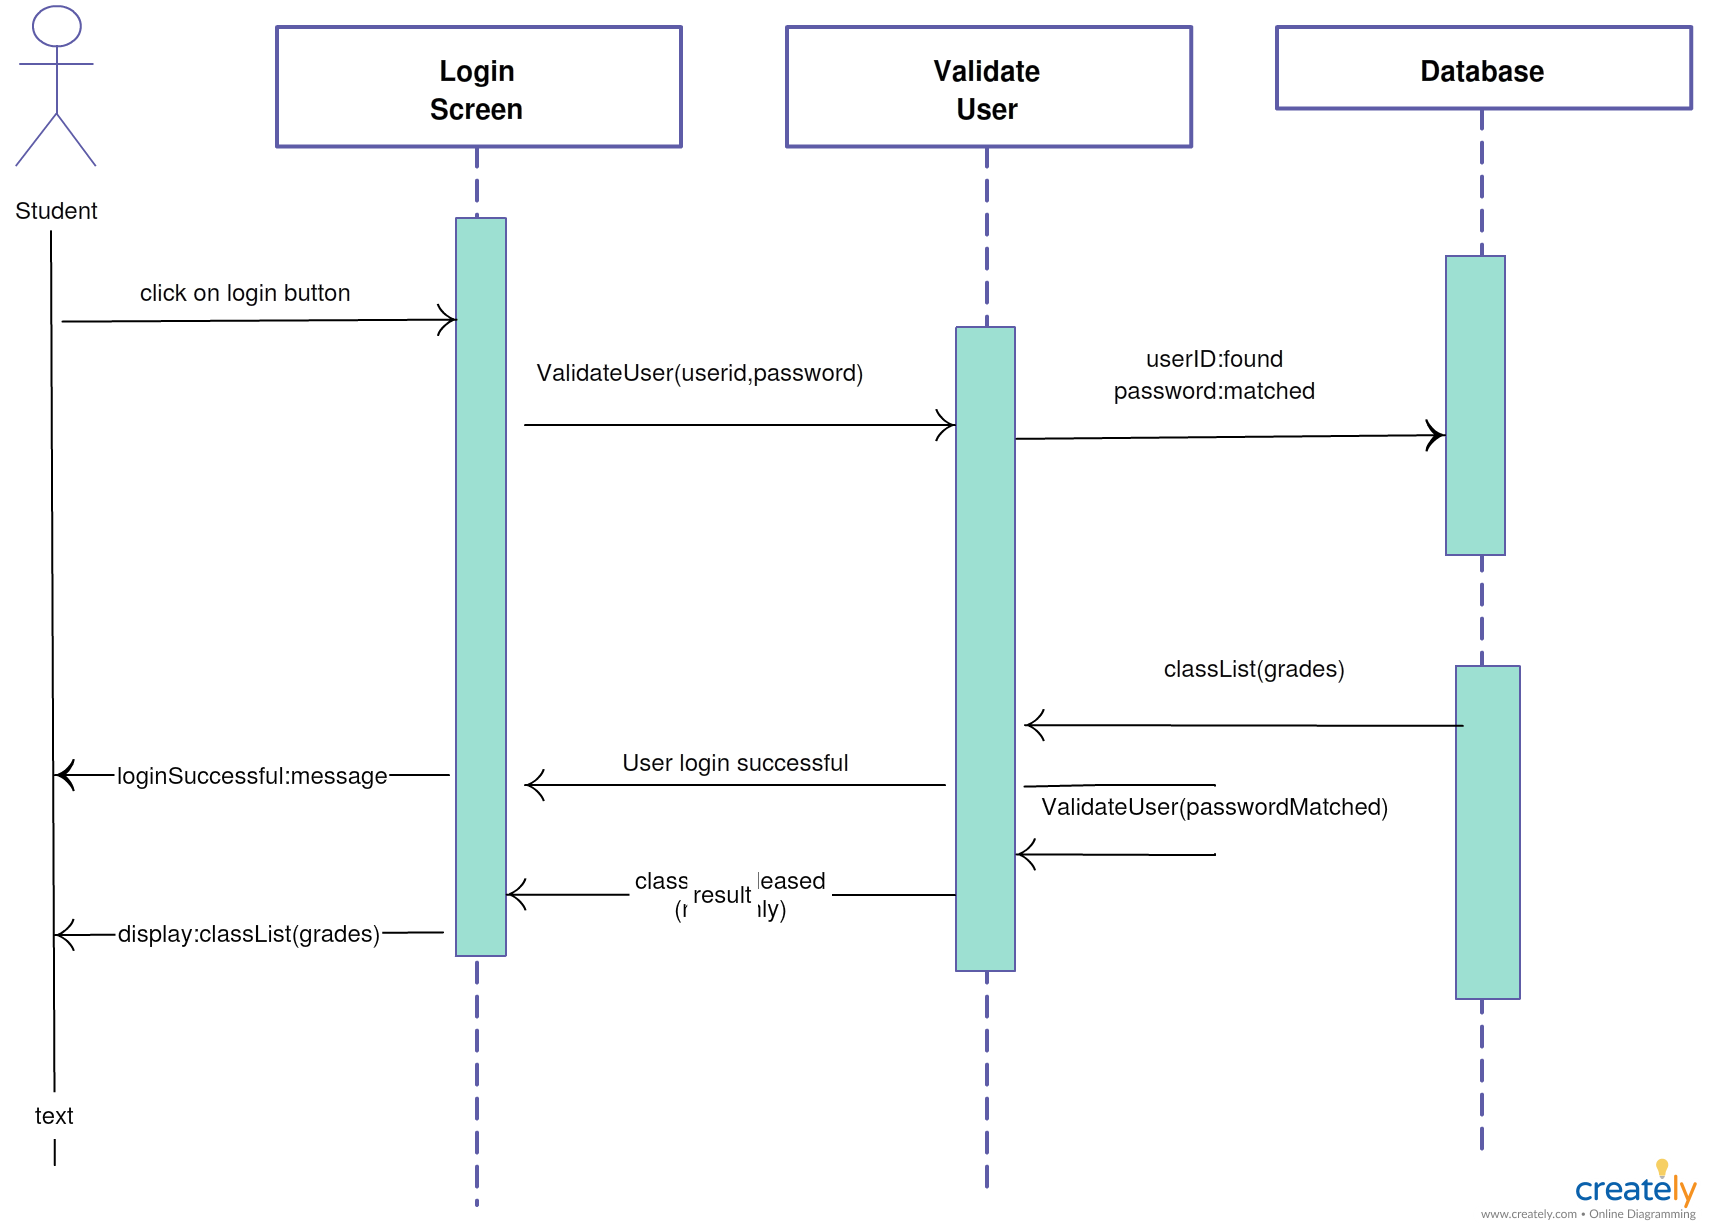 example sequence diagram for login wiring diagram local sample sequence diagram for login [ 1710 x 1230 Pixel ]